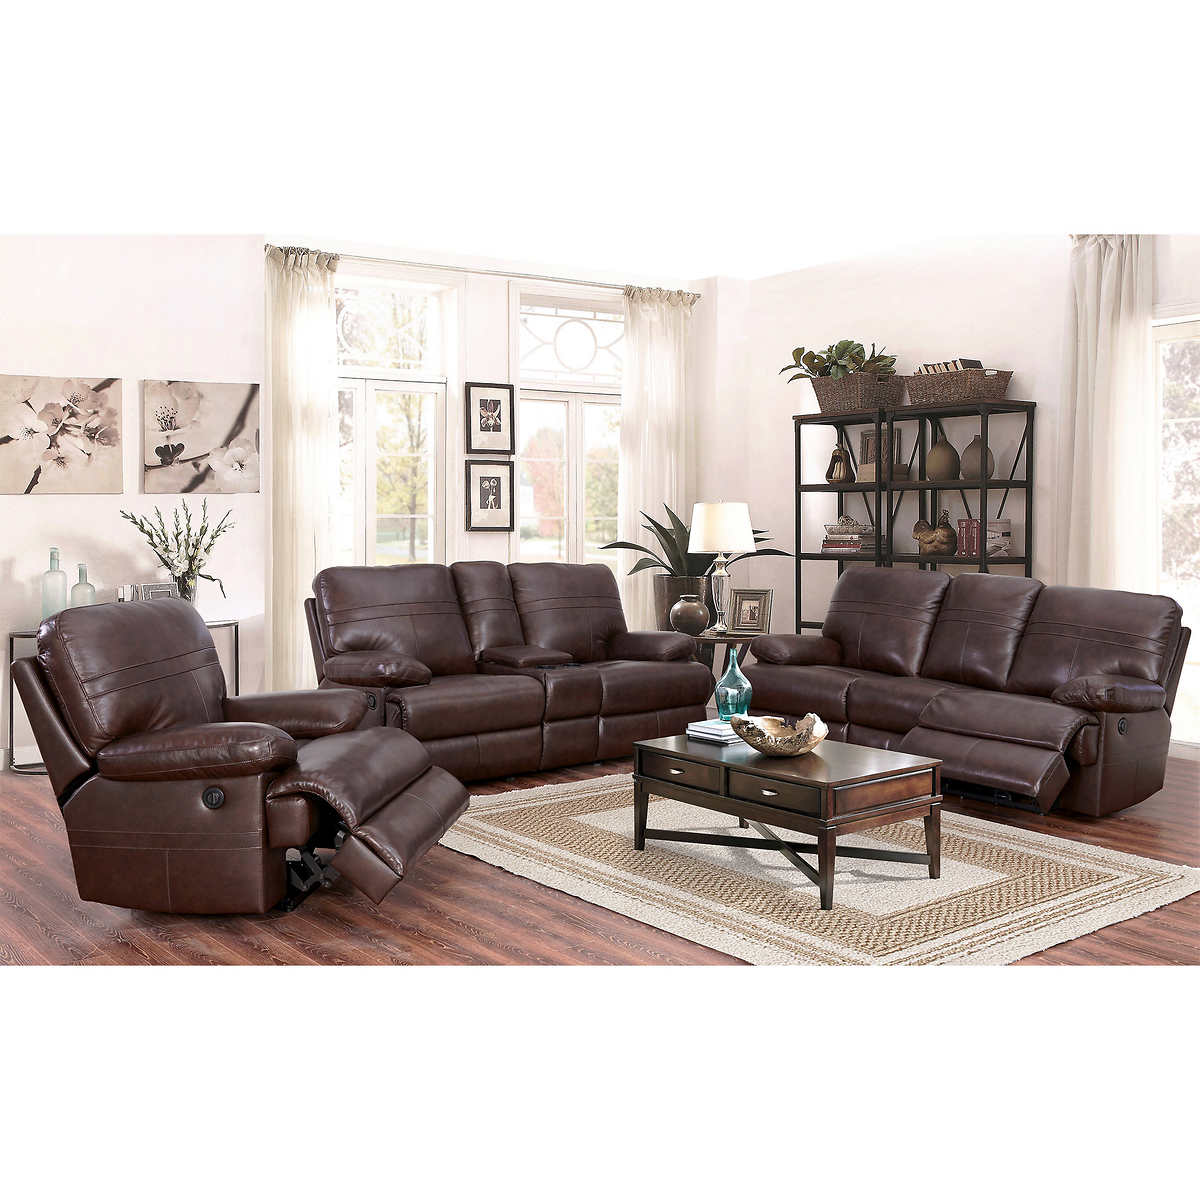 Costco Living Room Chairs: Living Room Sets Under 800